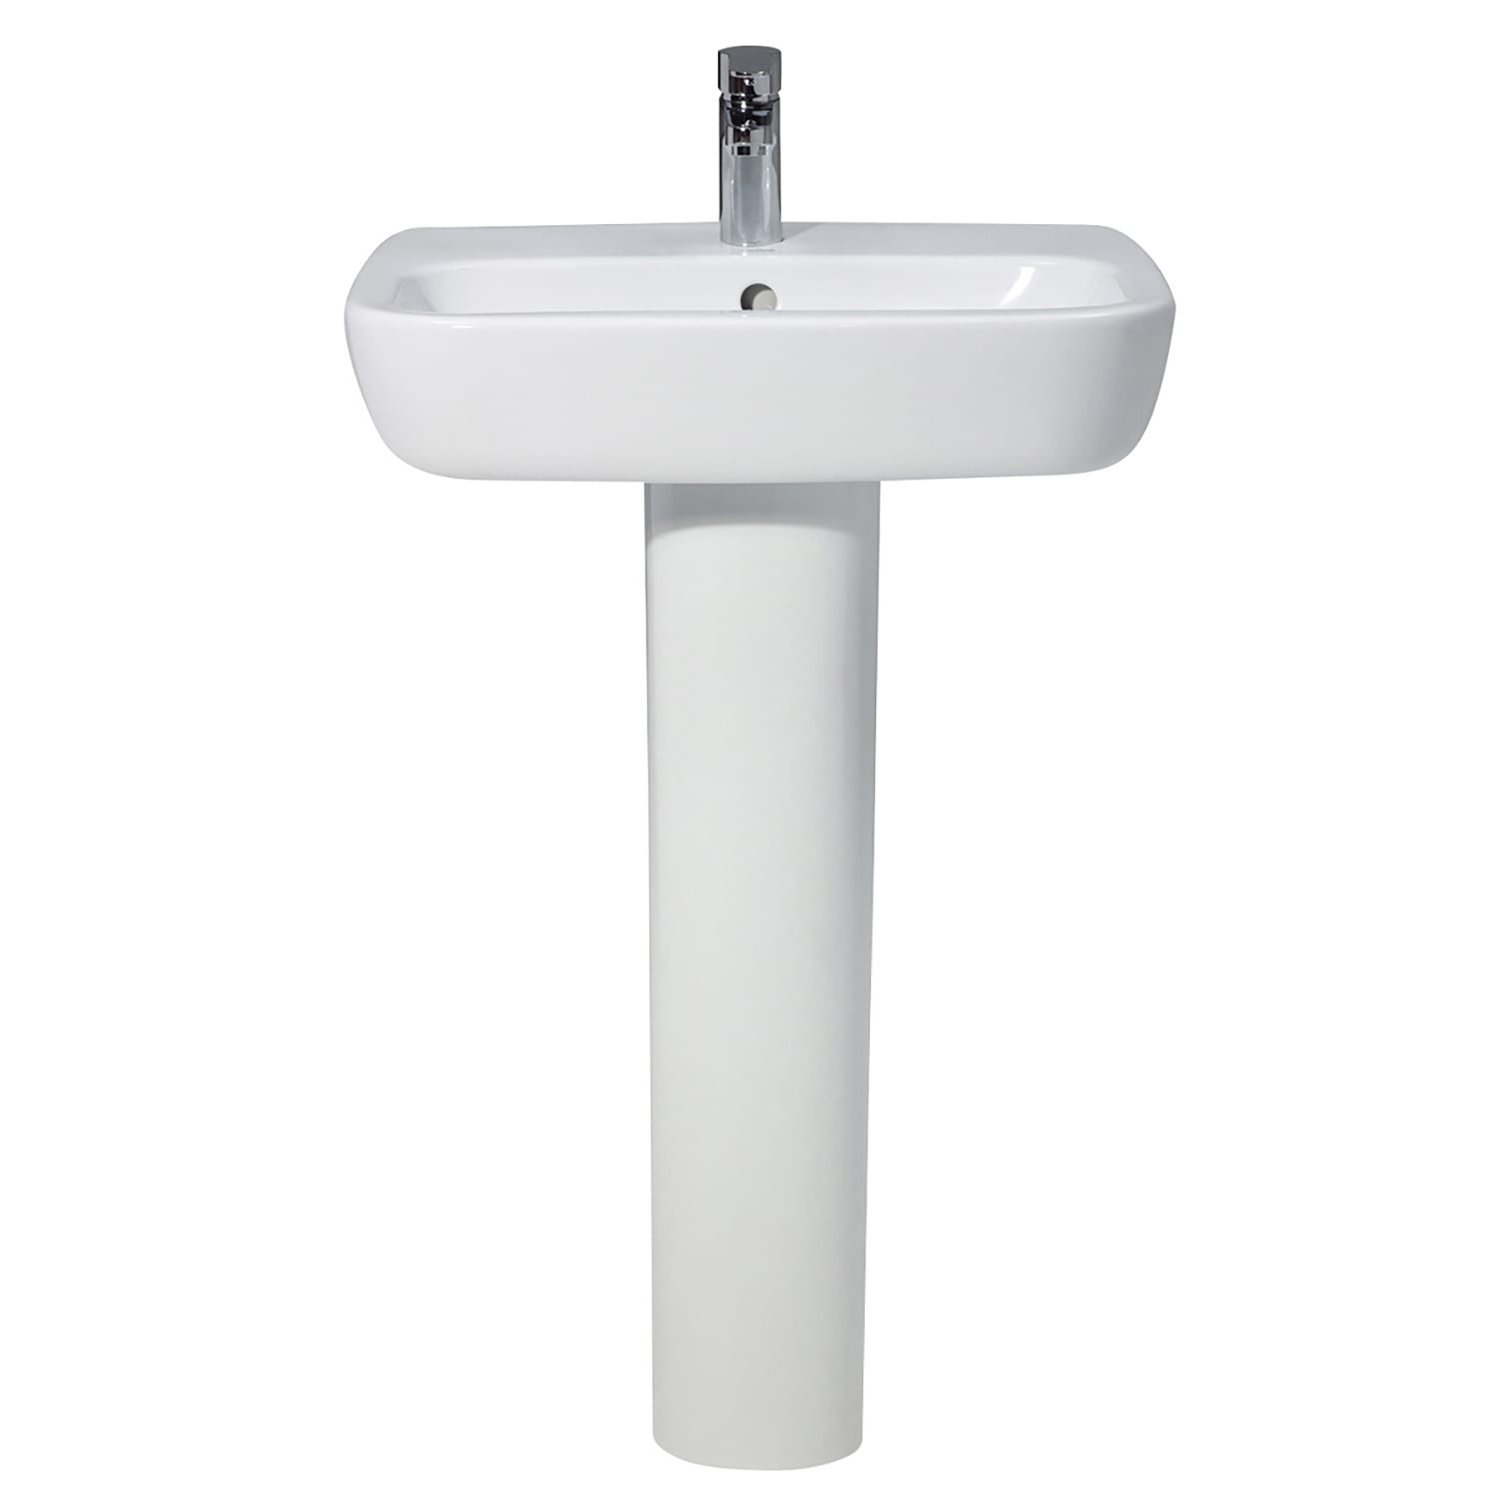 Verona Ballini Contemporary Basin with Full Pedestal 550mm Wide - 1 Tap Hole